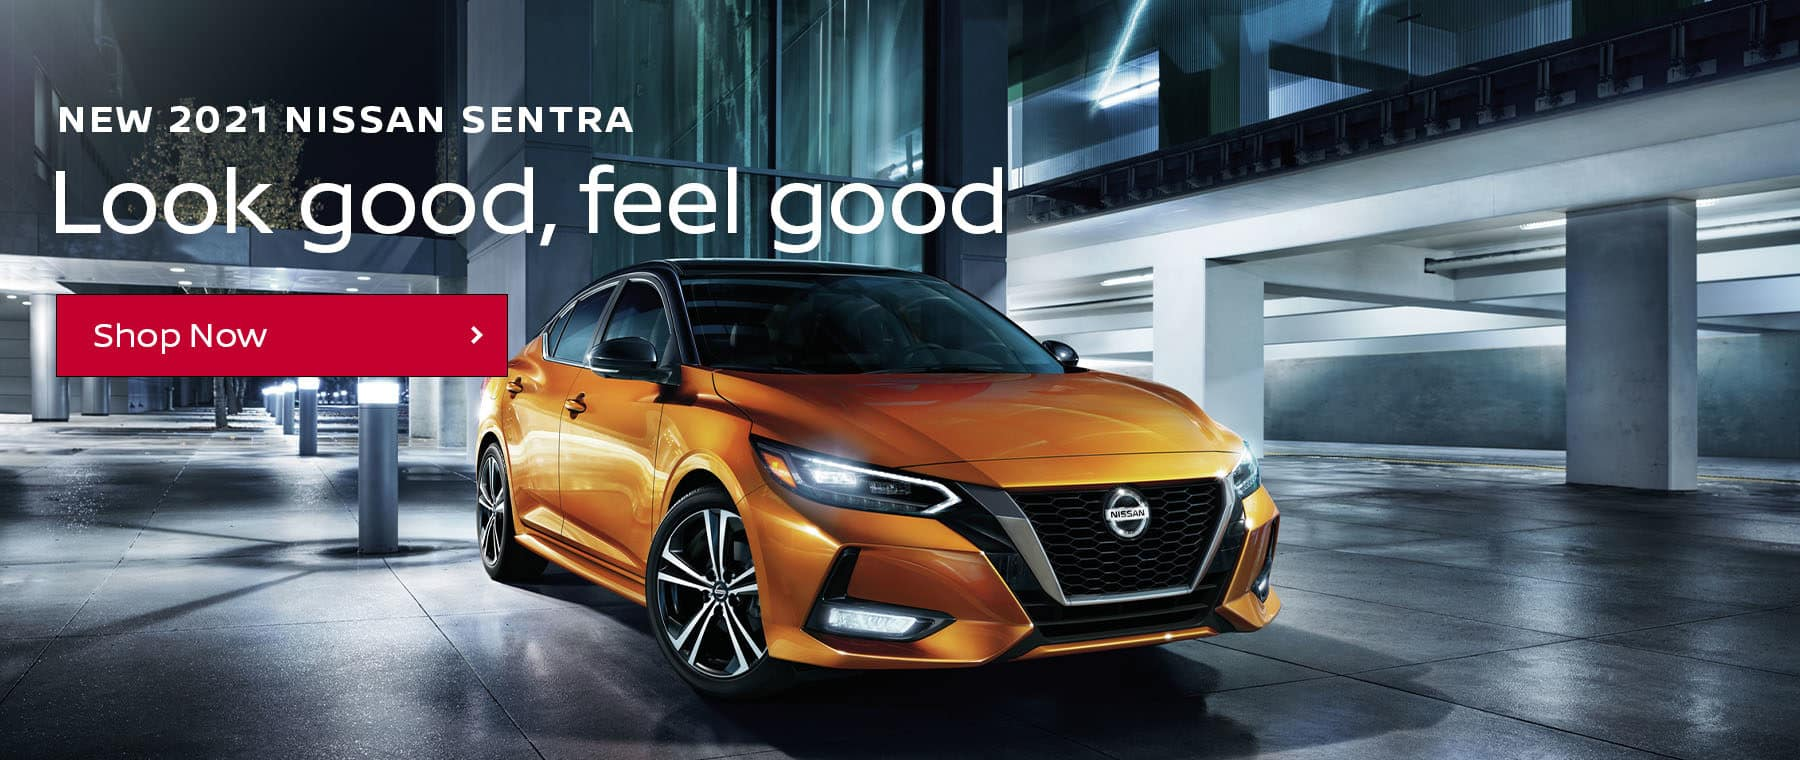 Look Good, Feel Good in the New Nissan Sentra